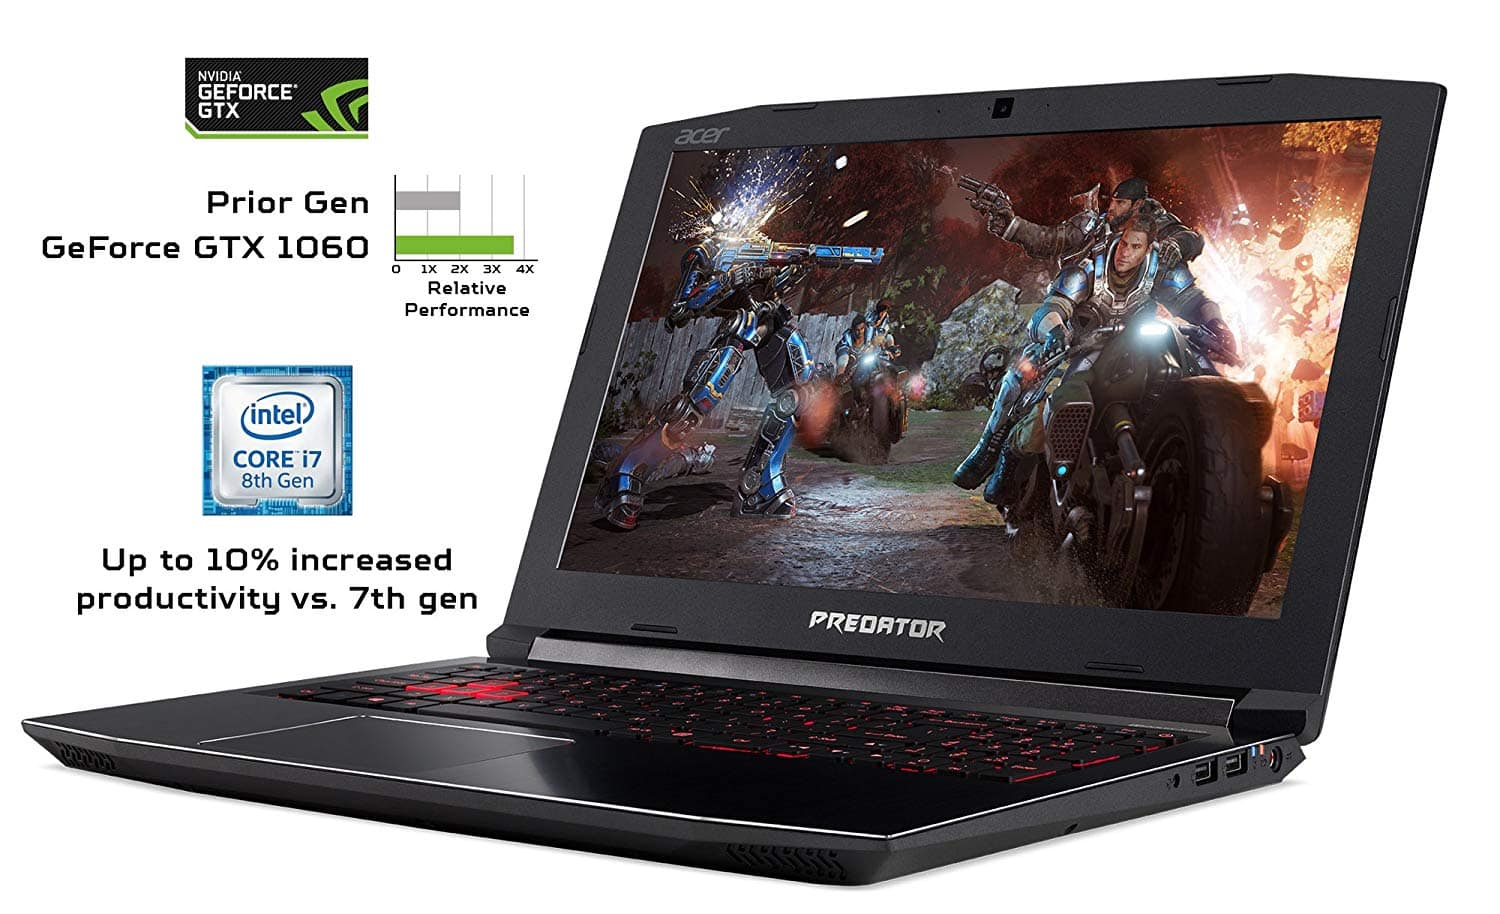 Best gaming laptop under 500 [Top 3 Guide]